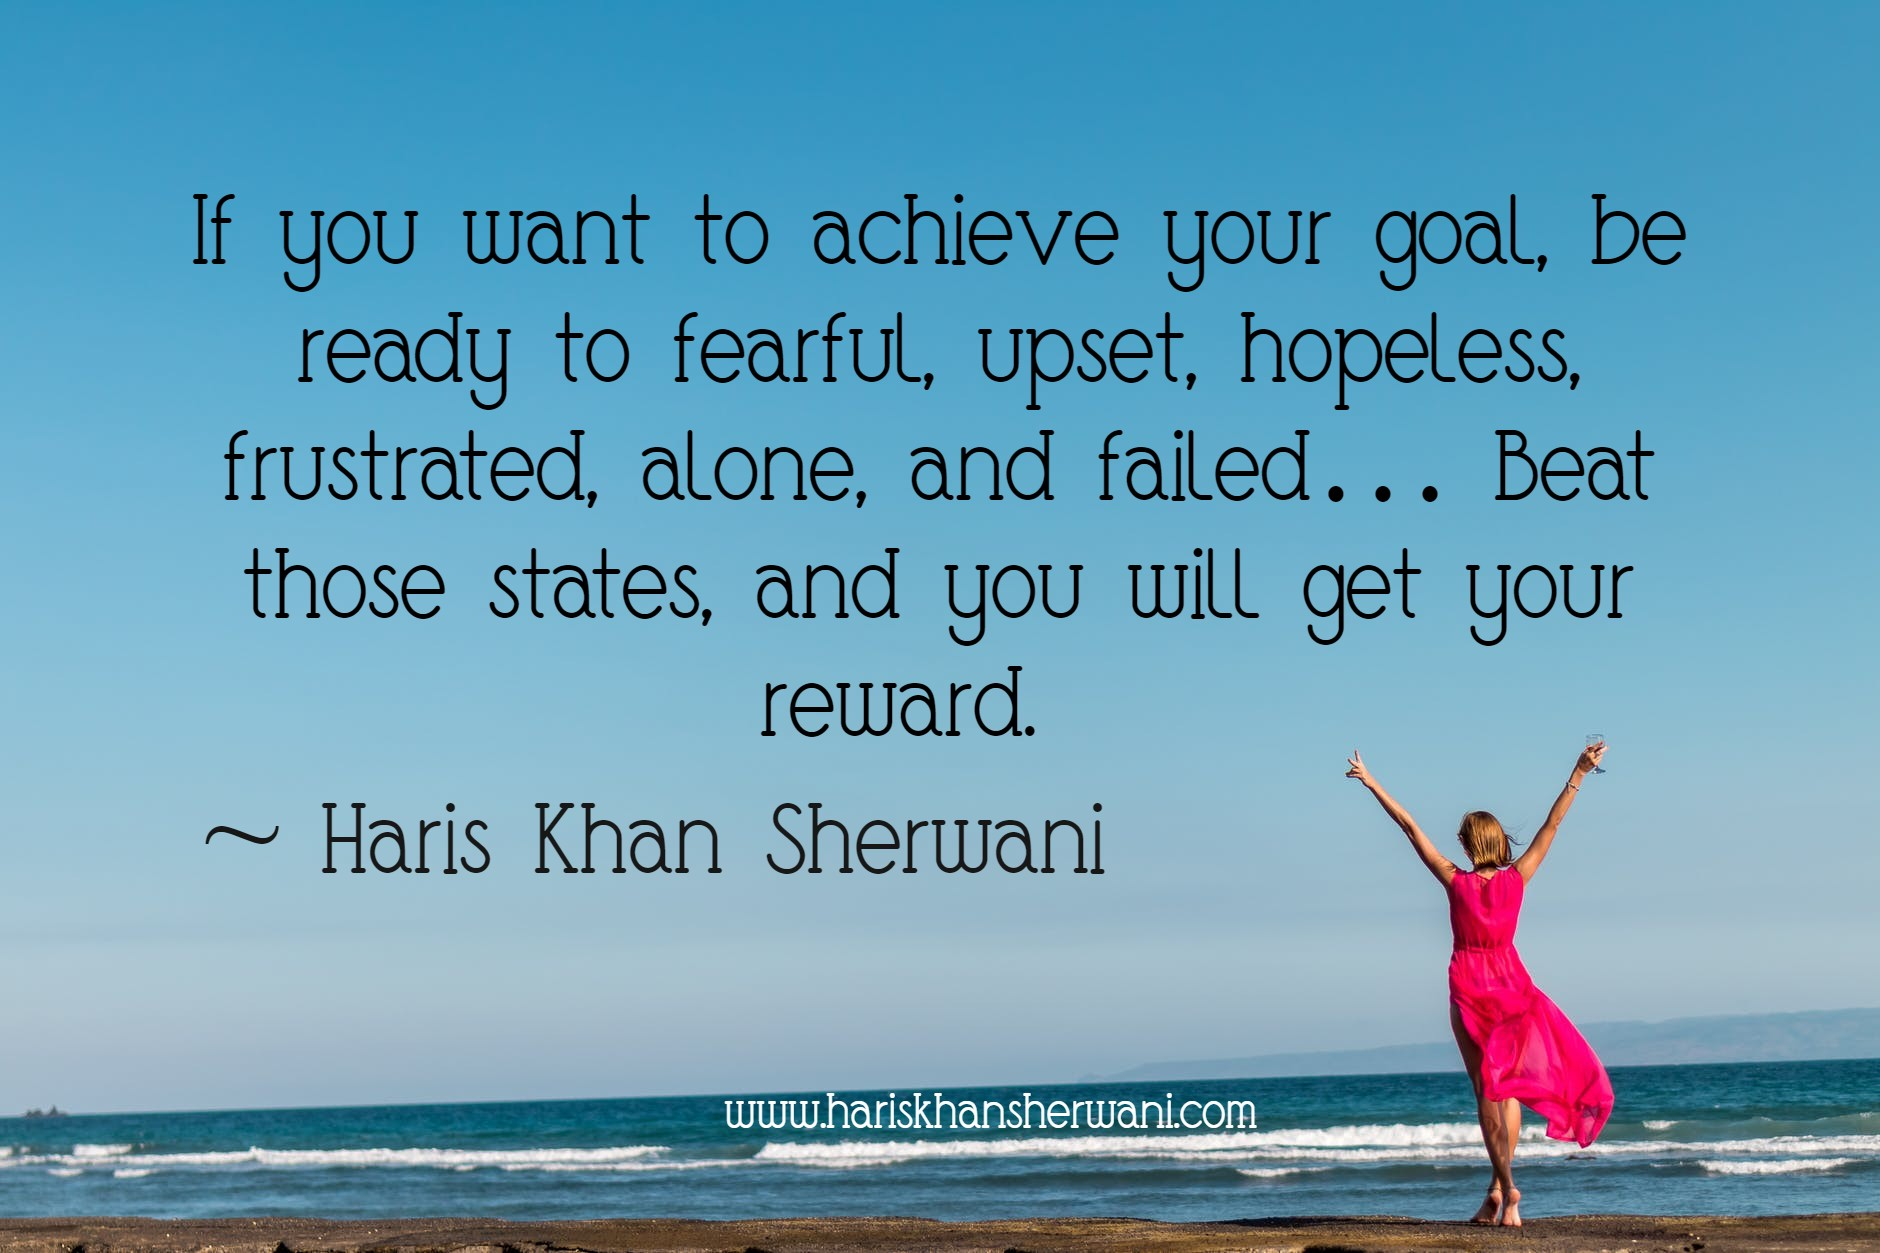 [Image] If you want to achieve your goal, be ready to fearful, upset, hopeless, frustrated, alone, and failed… Beat those states, and you will get your reward. ~ Haris Khan Sherwani